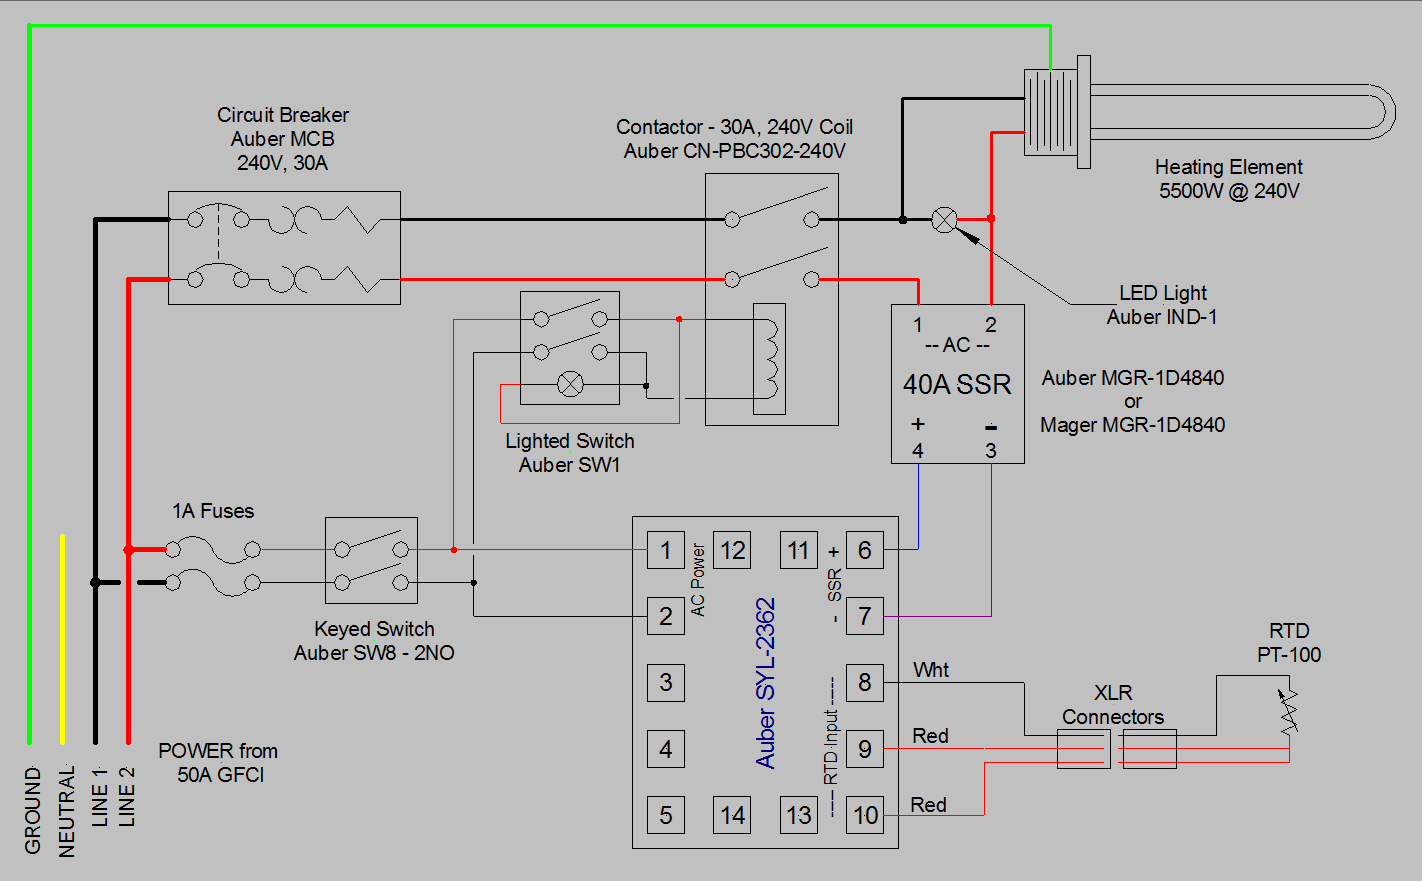 Single element wiring diagram free download wiring diagram mash boil control help homebrewtalk com basic wiring diagram none of the diagrams represent a workable system below is a diagram for upper thermostat asfbconference2016 Gallery